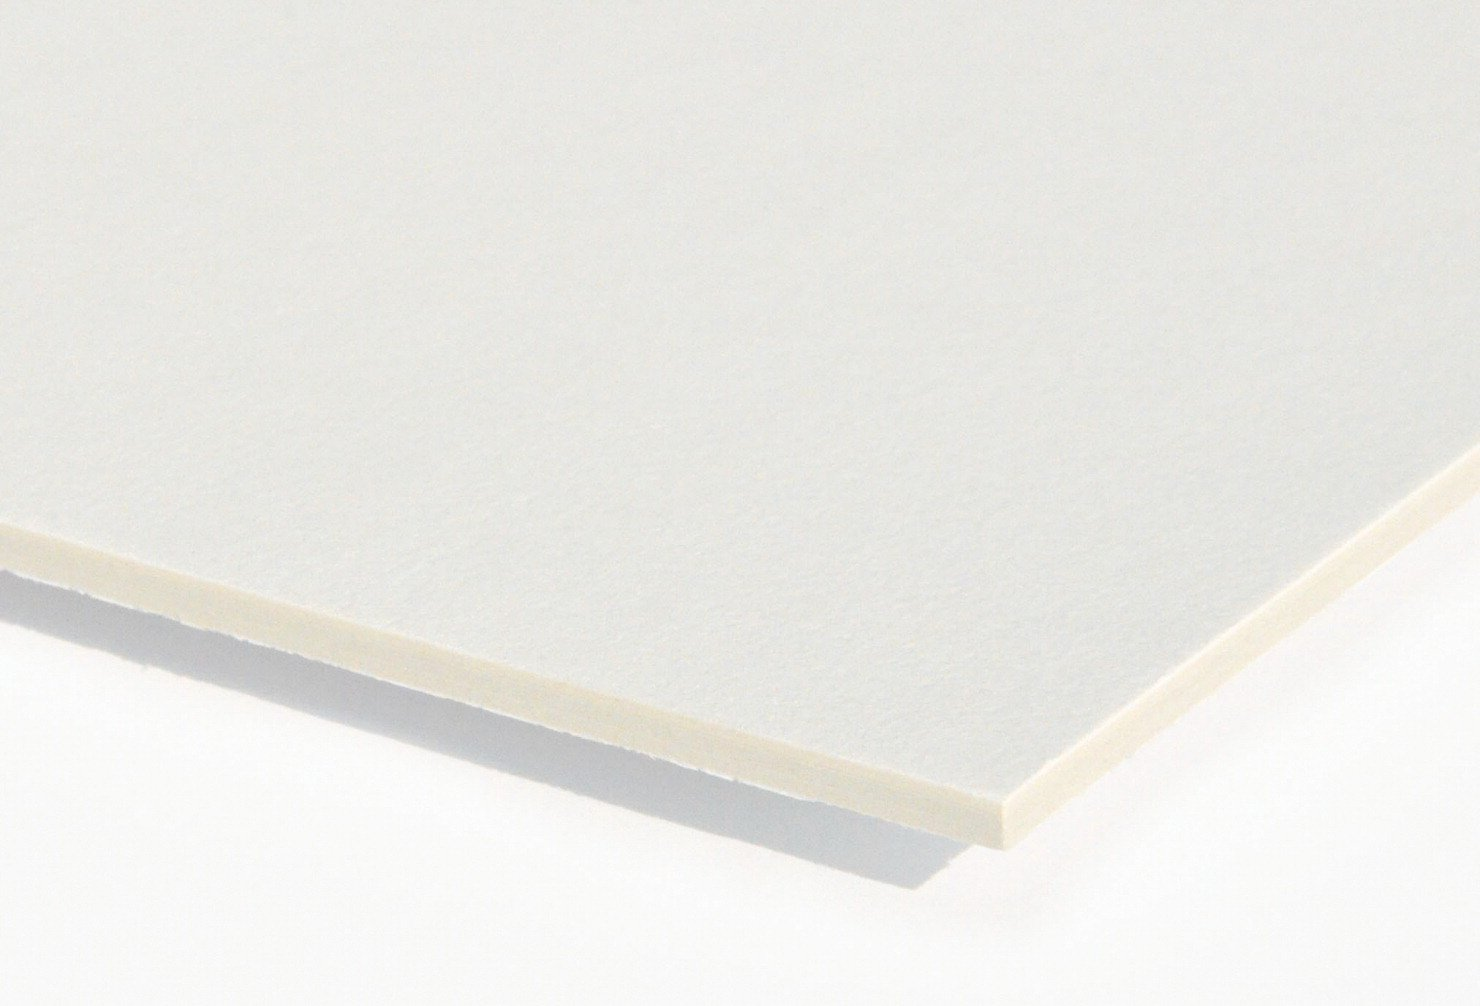 Crescent 114 Extra-Heavy Weight Cold Press Watercolor Board, 30 x 40 inches, Case of 10 by Crescent